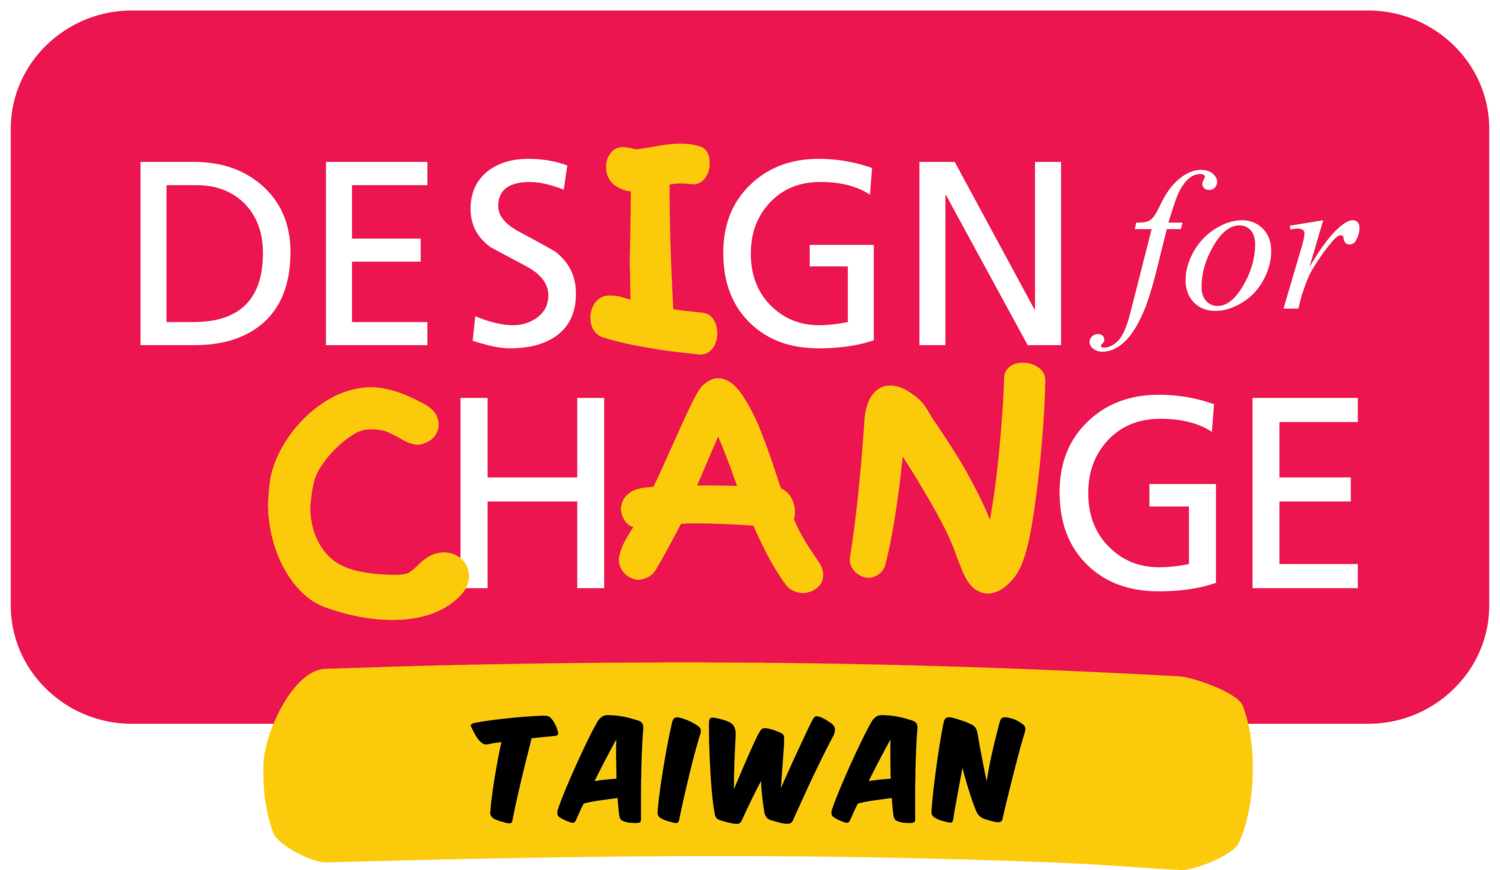 Design for Change, Taiwan